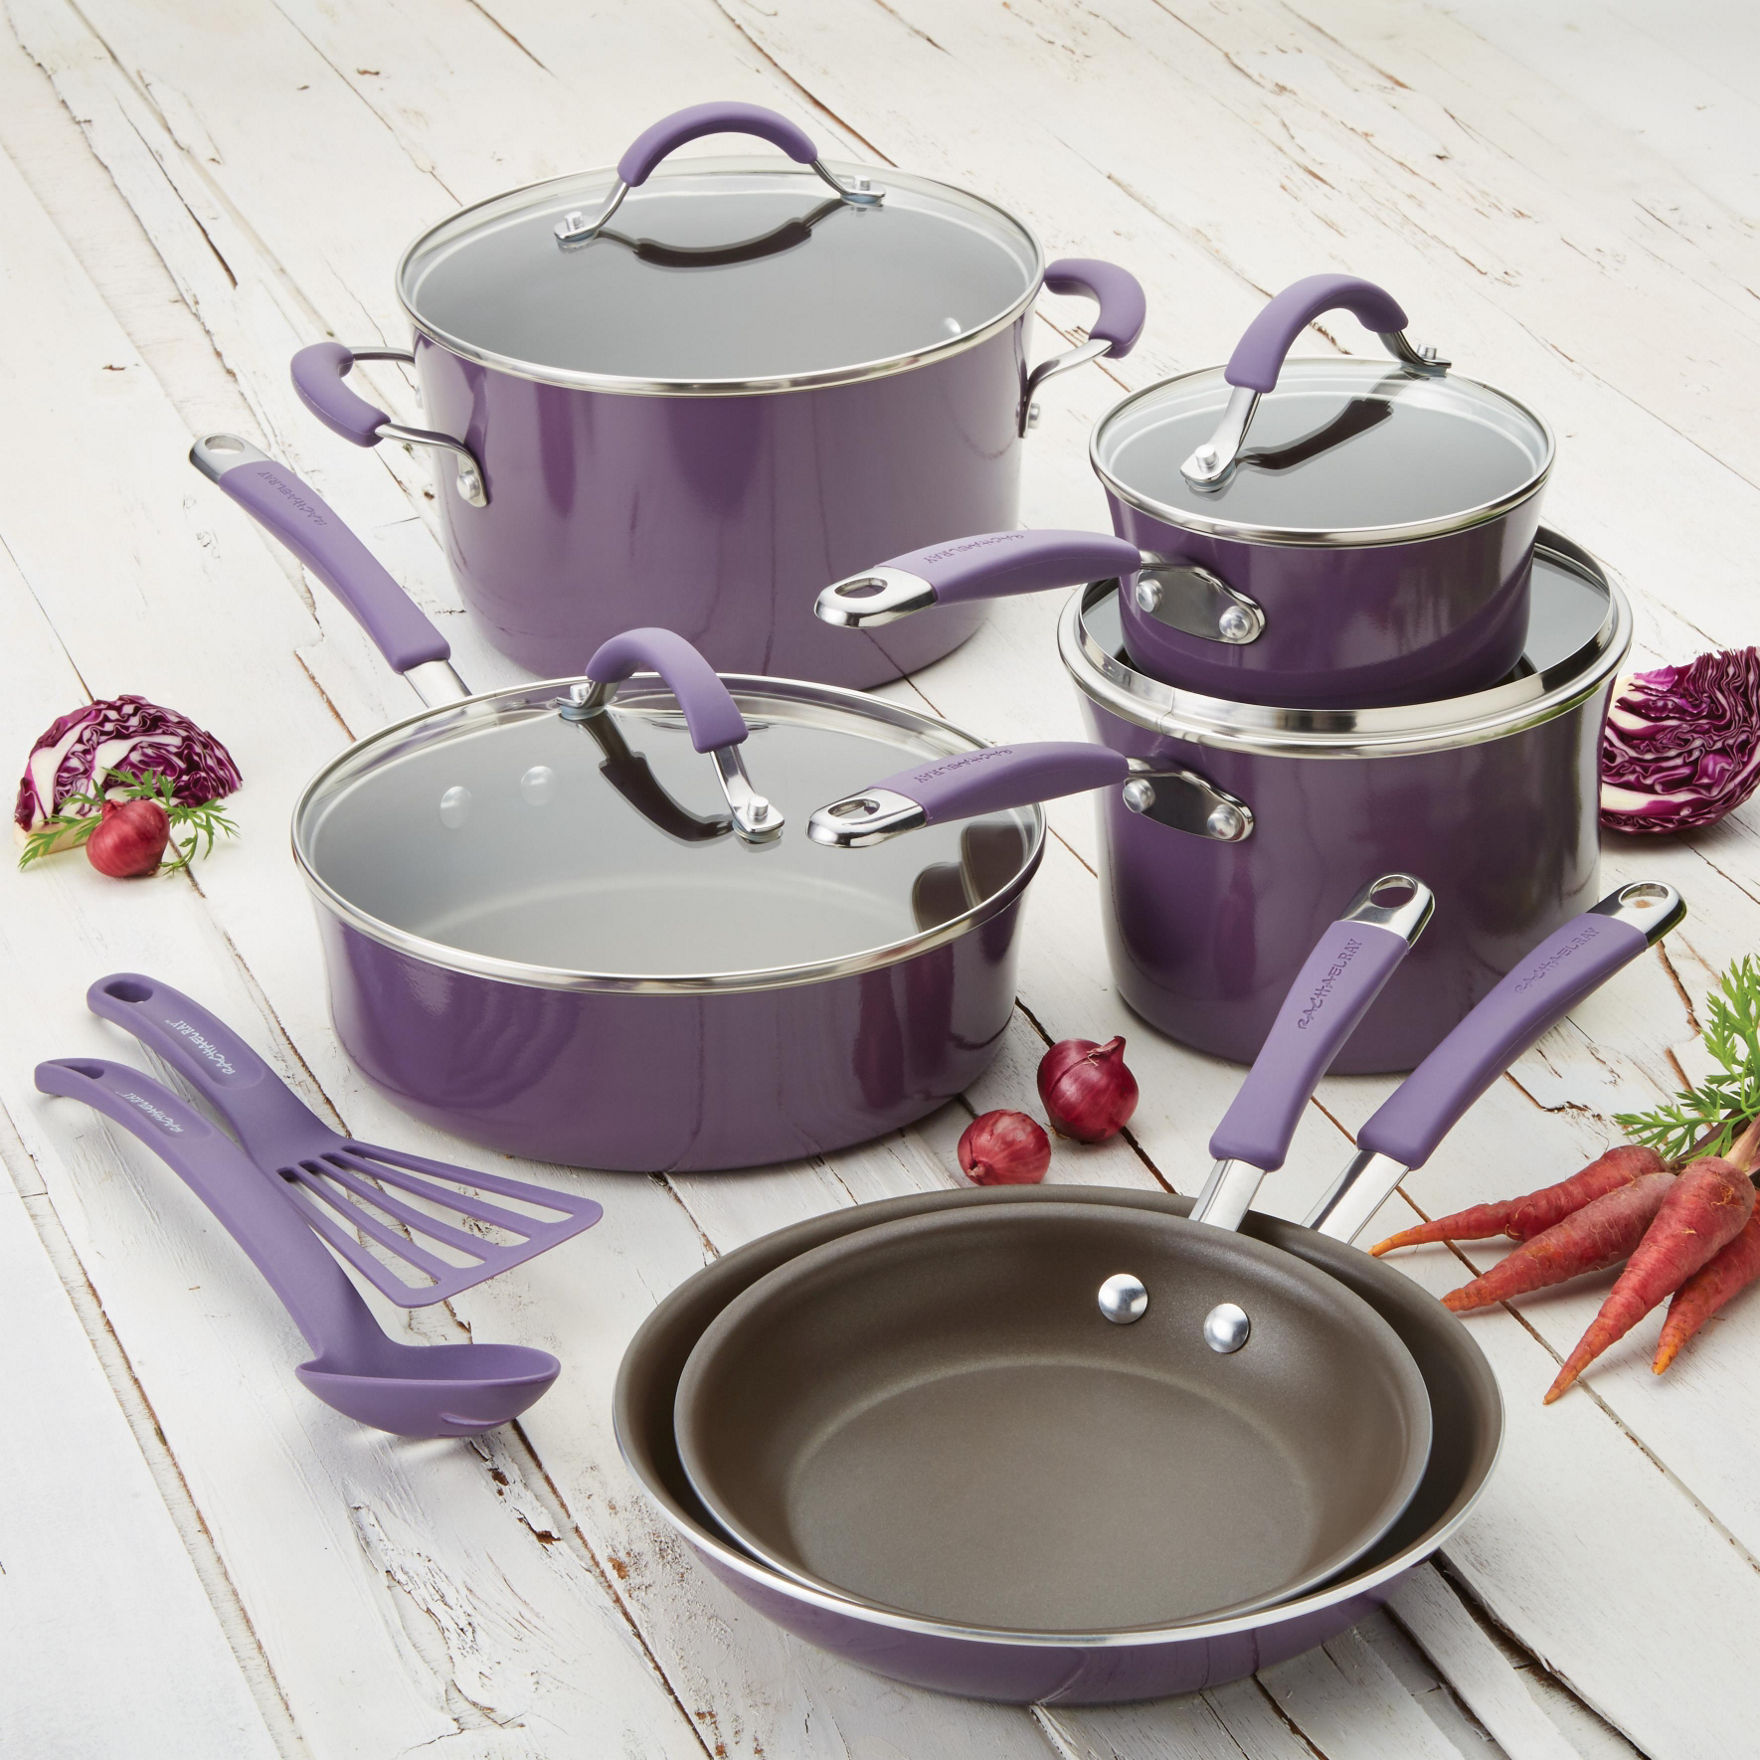 Rachael Ray Lavender Cookware Sets Cookware